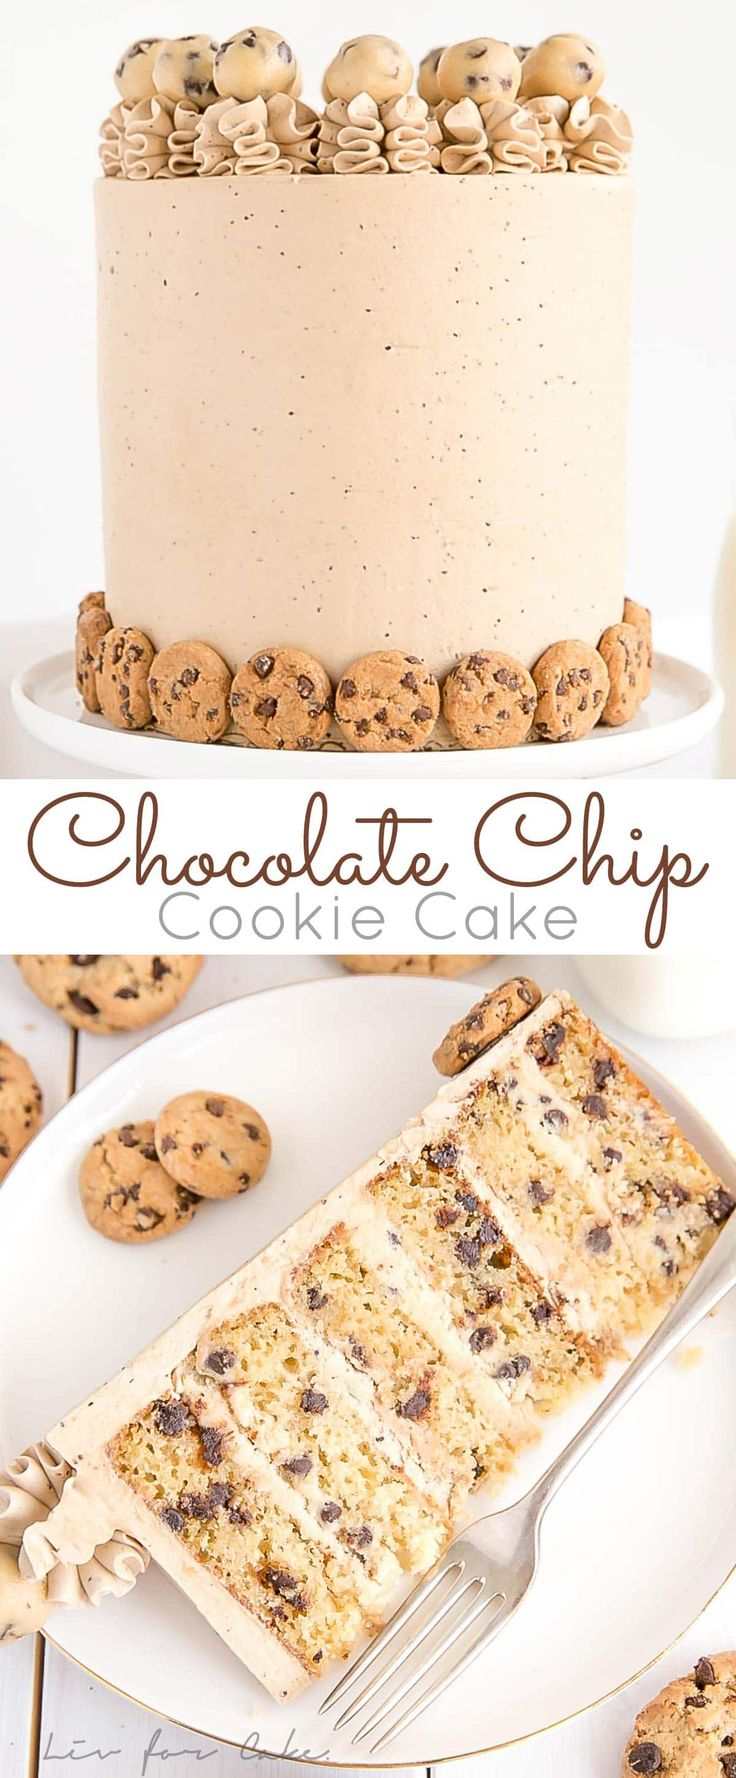 This Chocolate Chip Cookie Cake has brown sugar chocolate chip cake layers, a co…